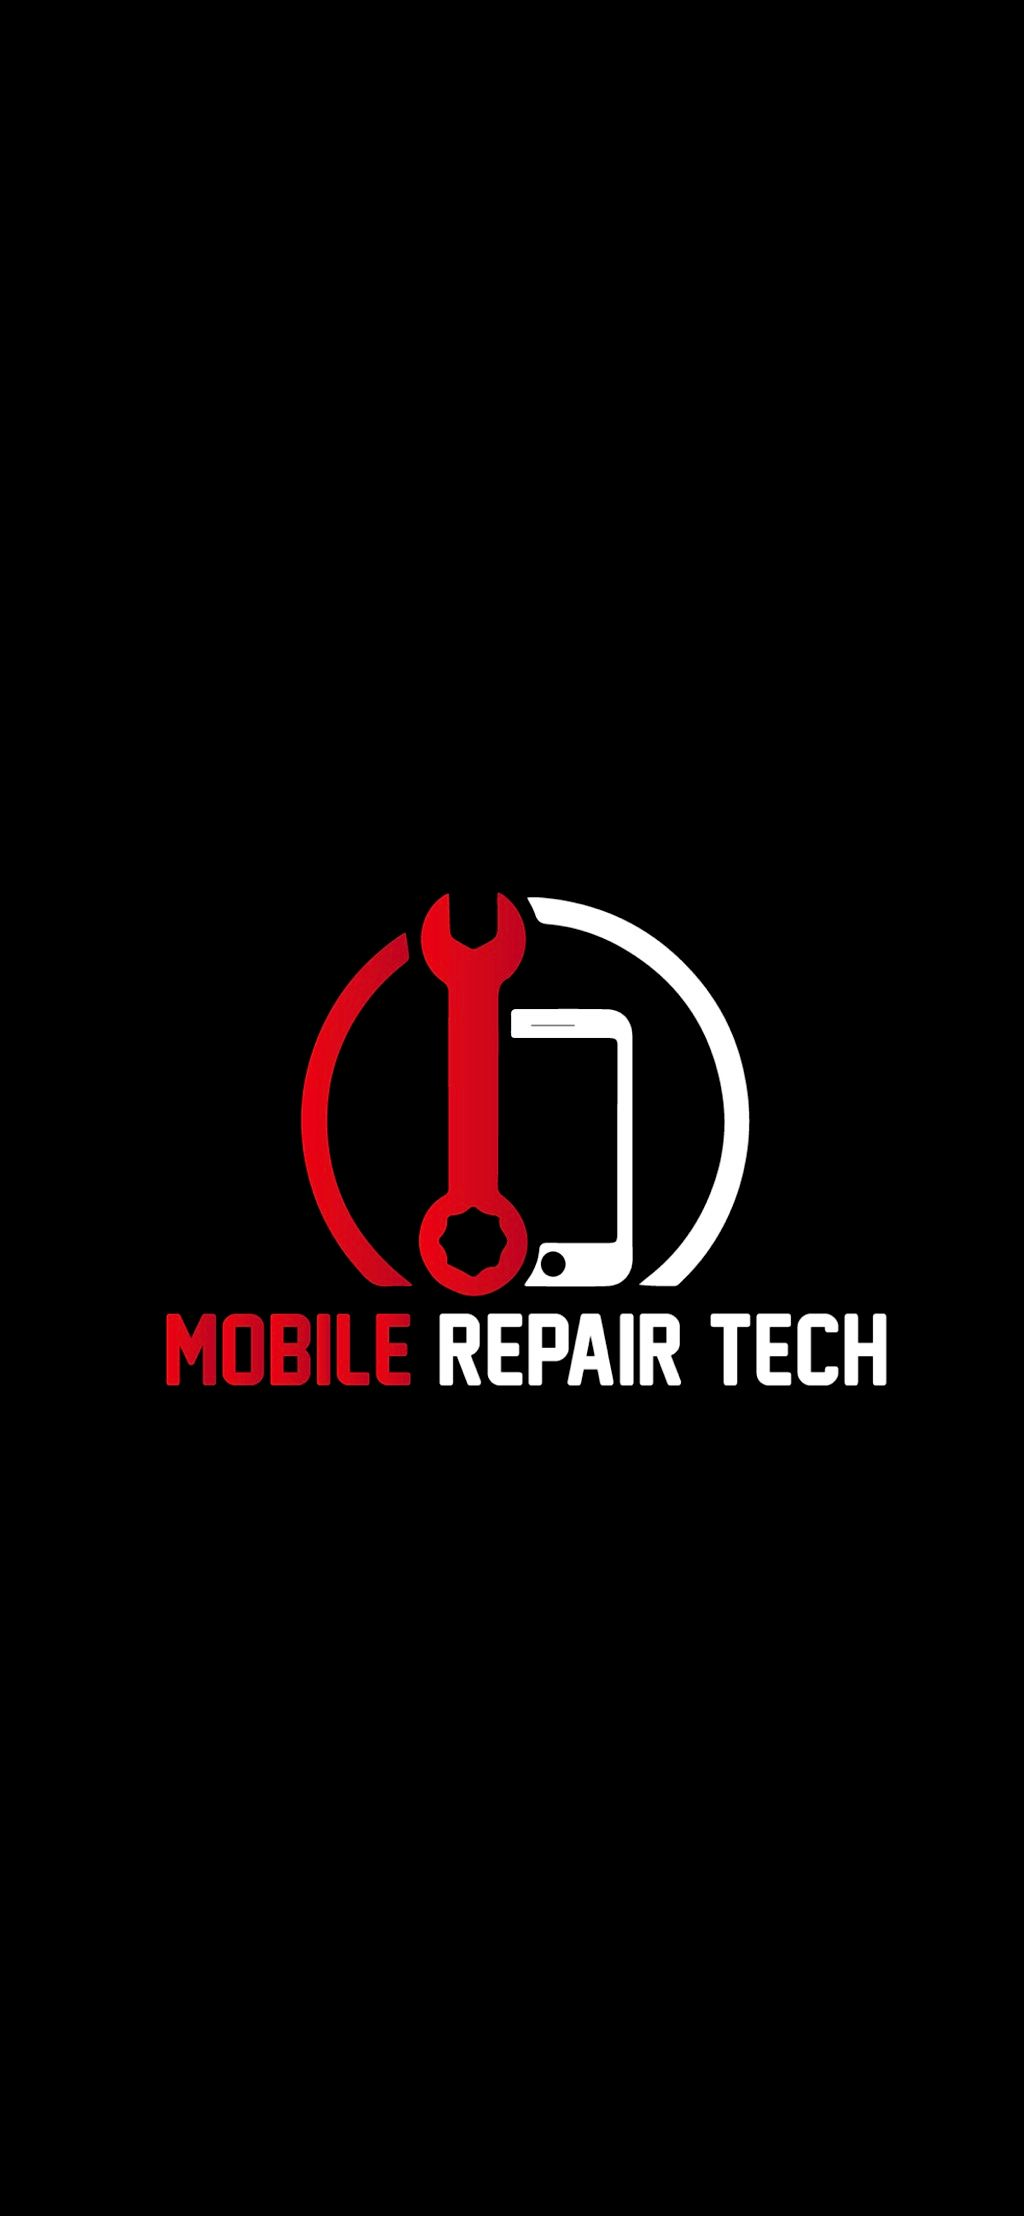 Mobile Repair Tech